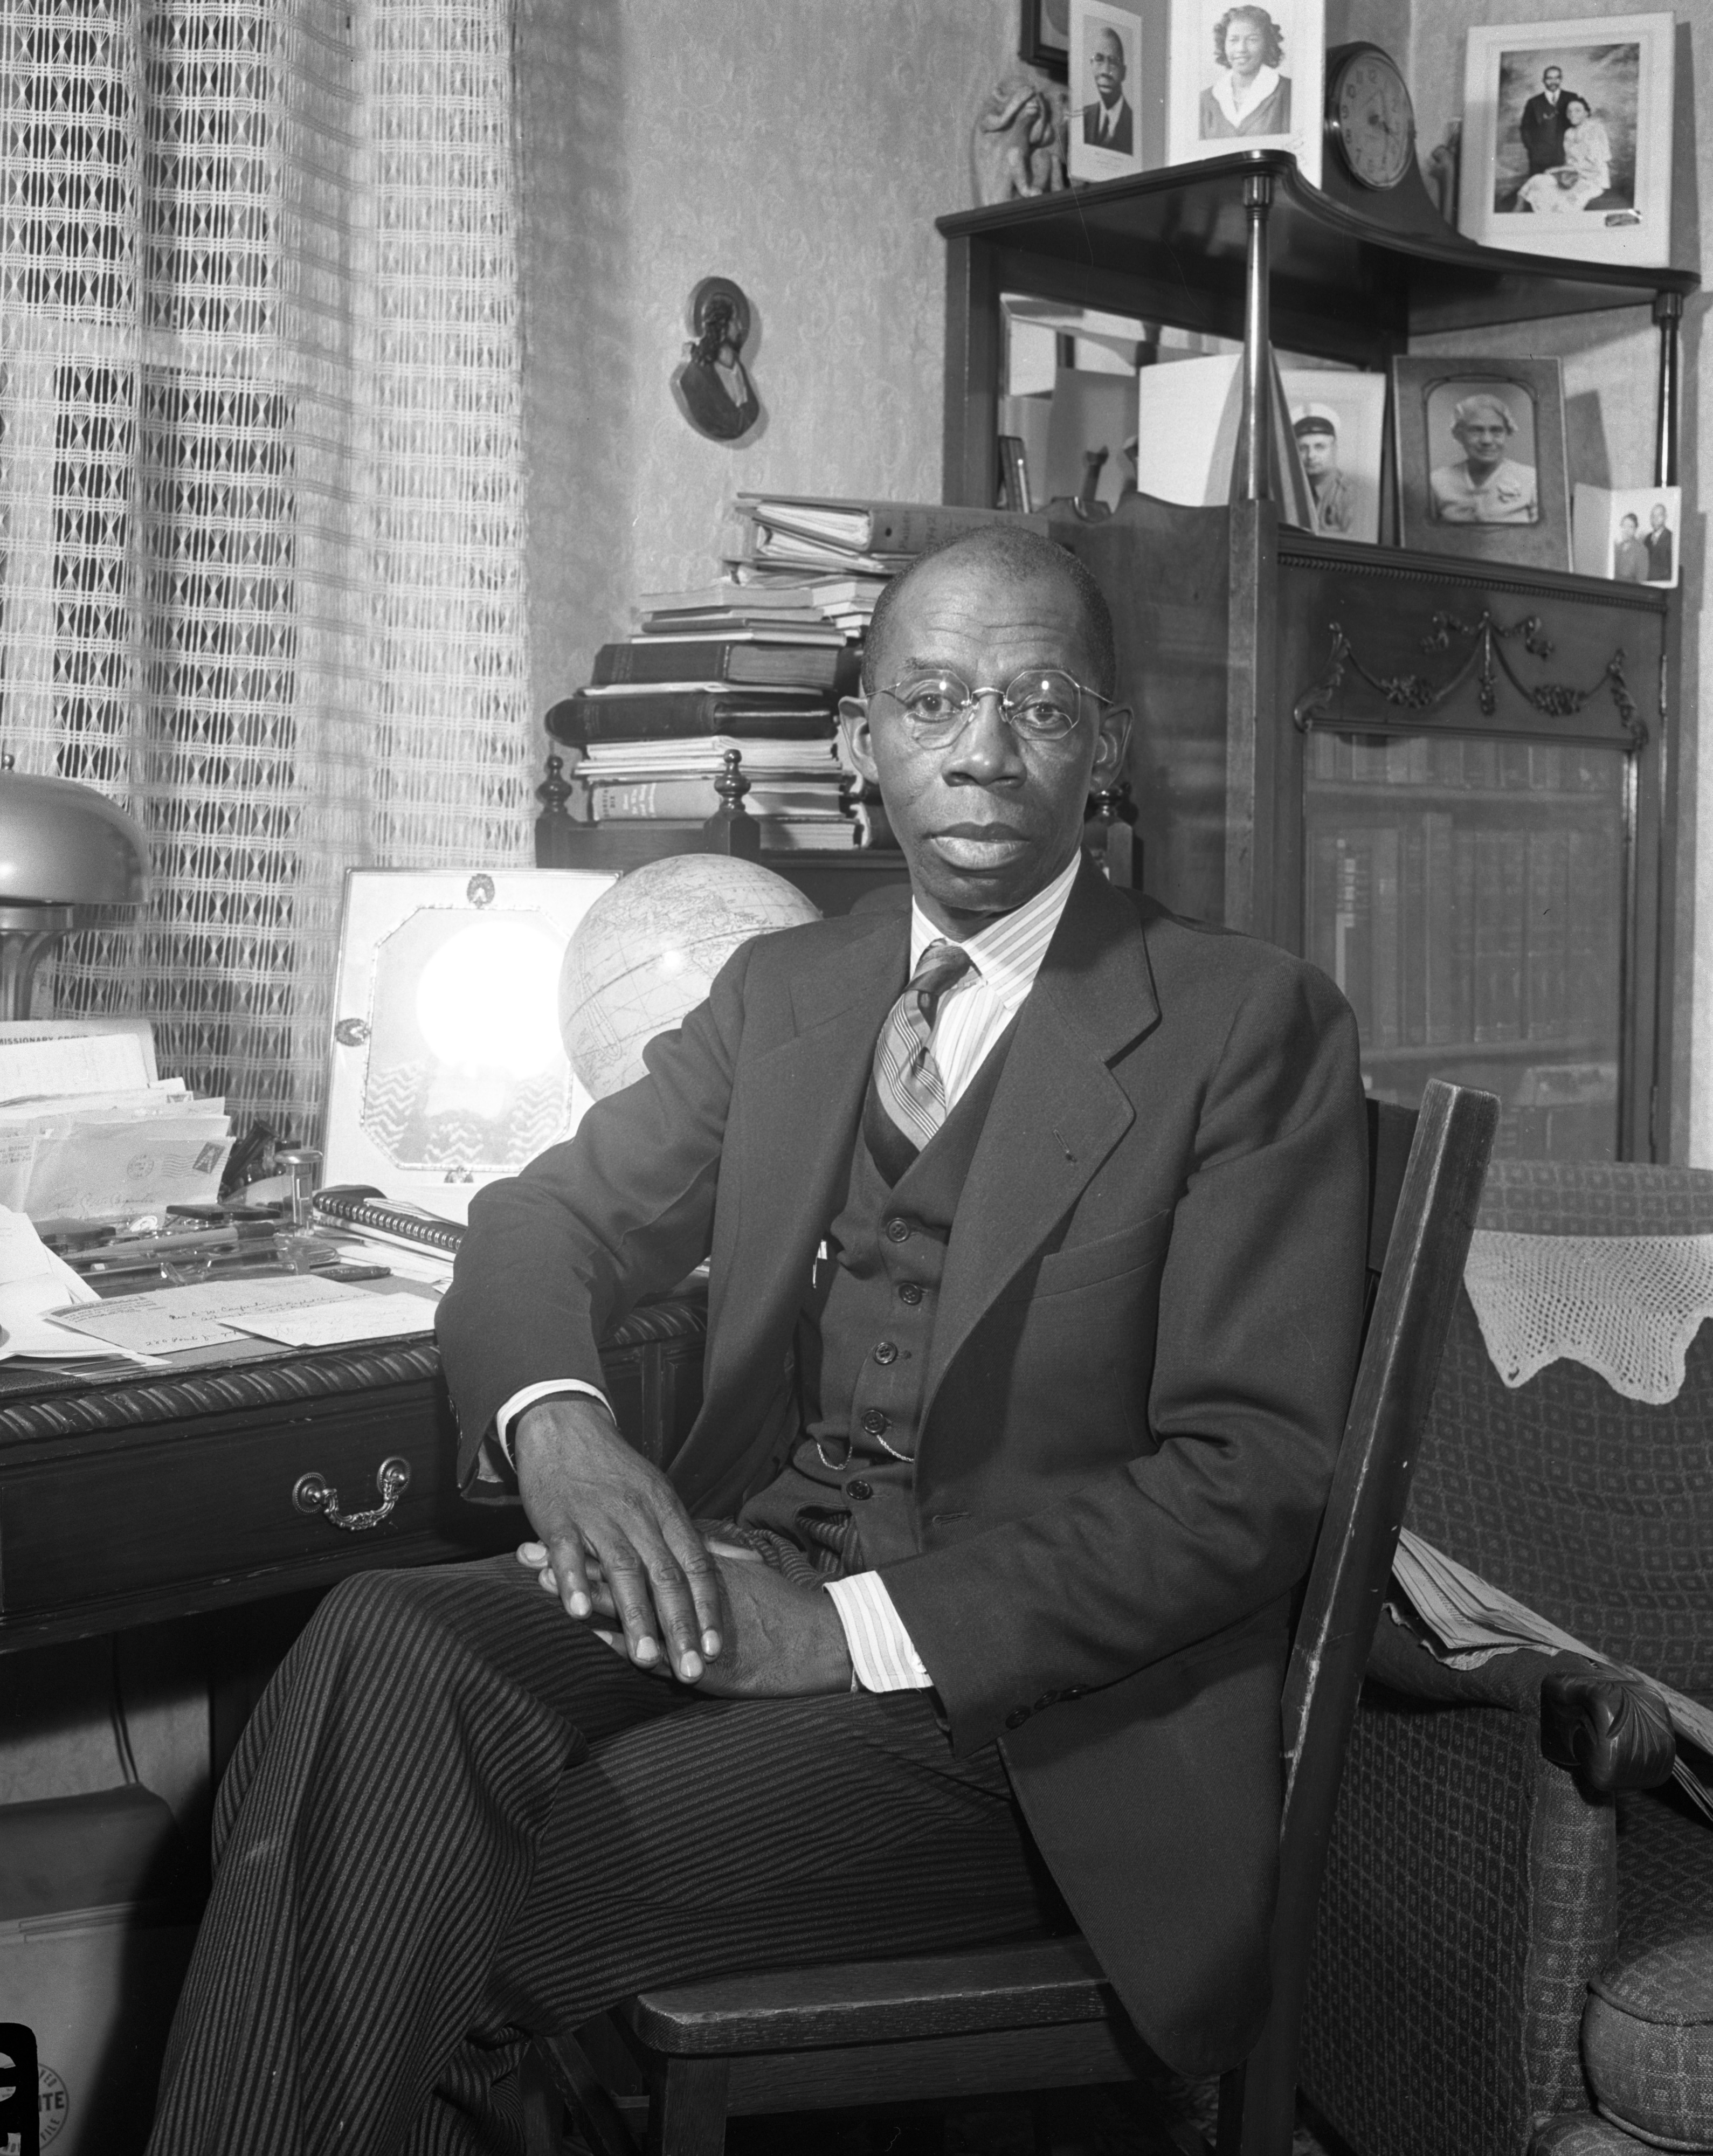 Rev. Charles W. Carpenter, 2nd Baptist Church, 1944 image